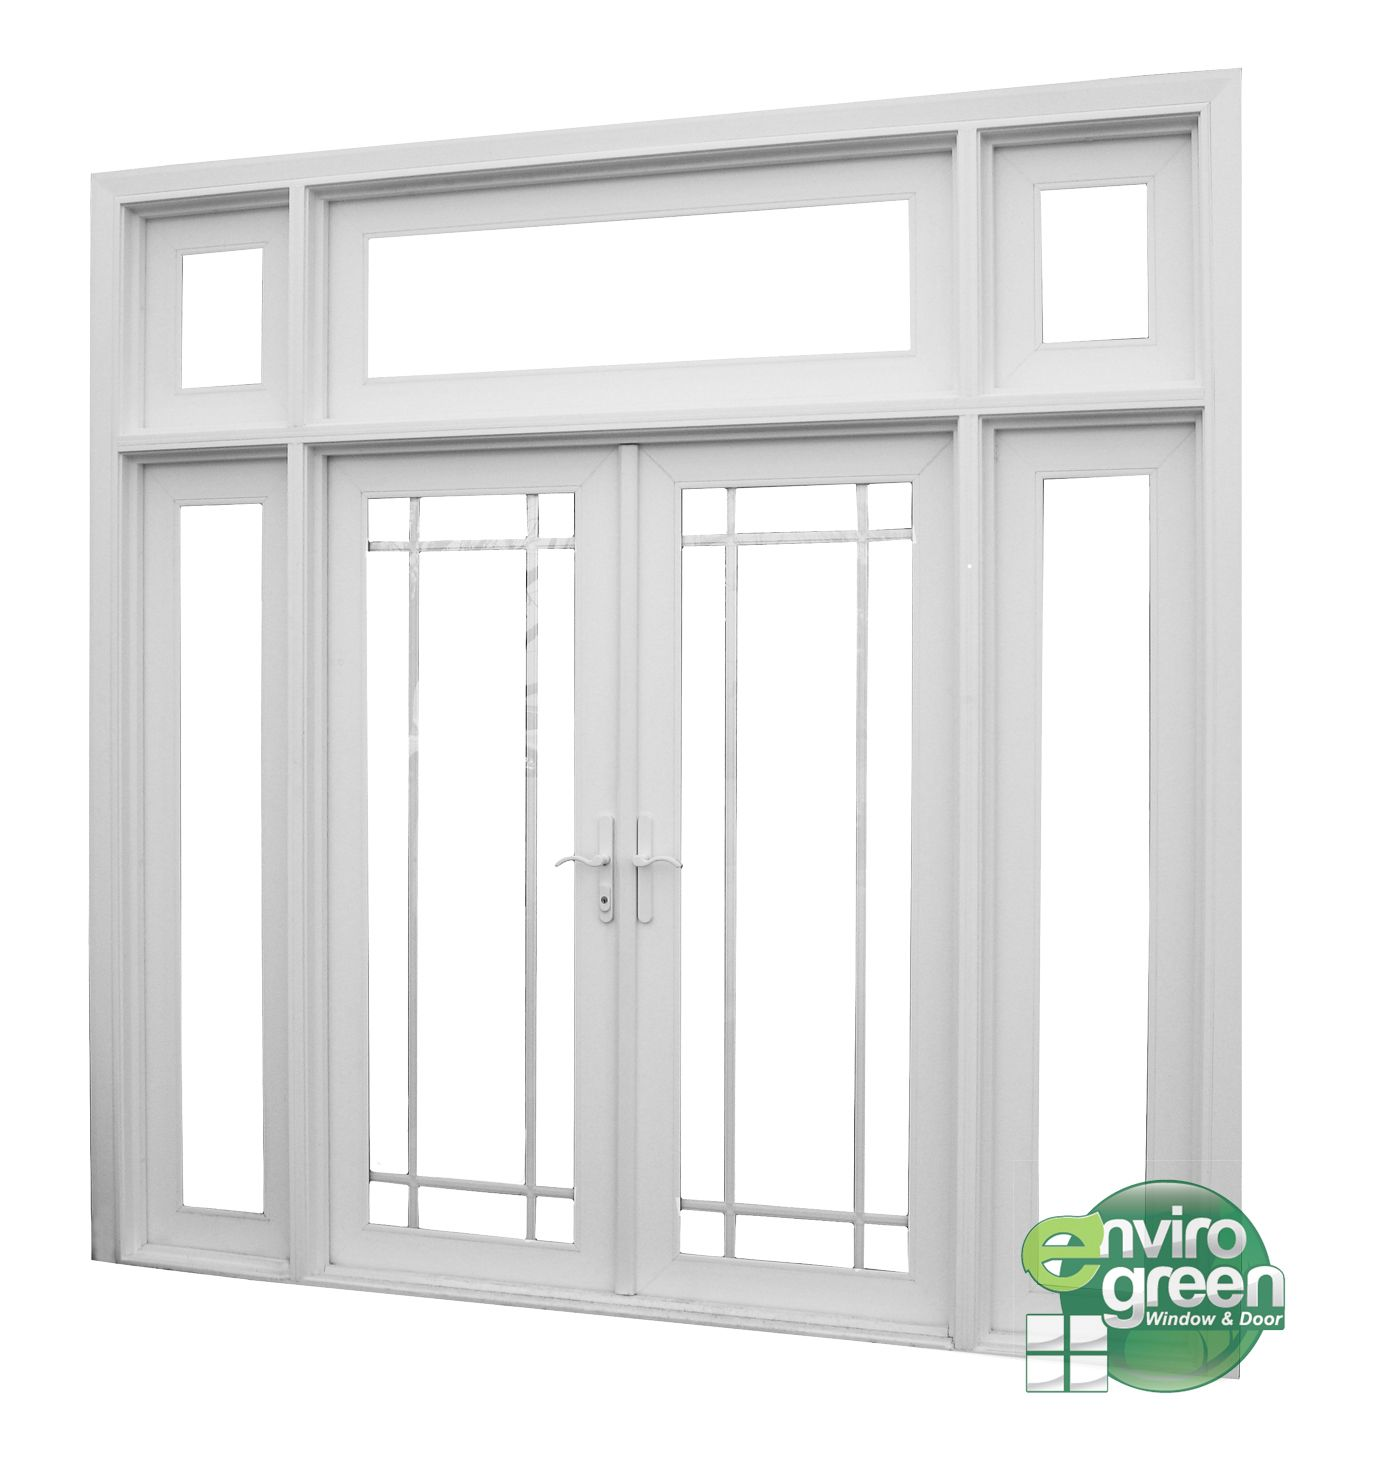 Single patio door with side lights french door for Single glass patio door